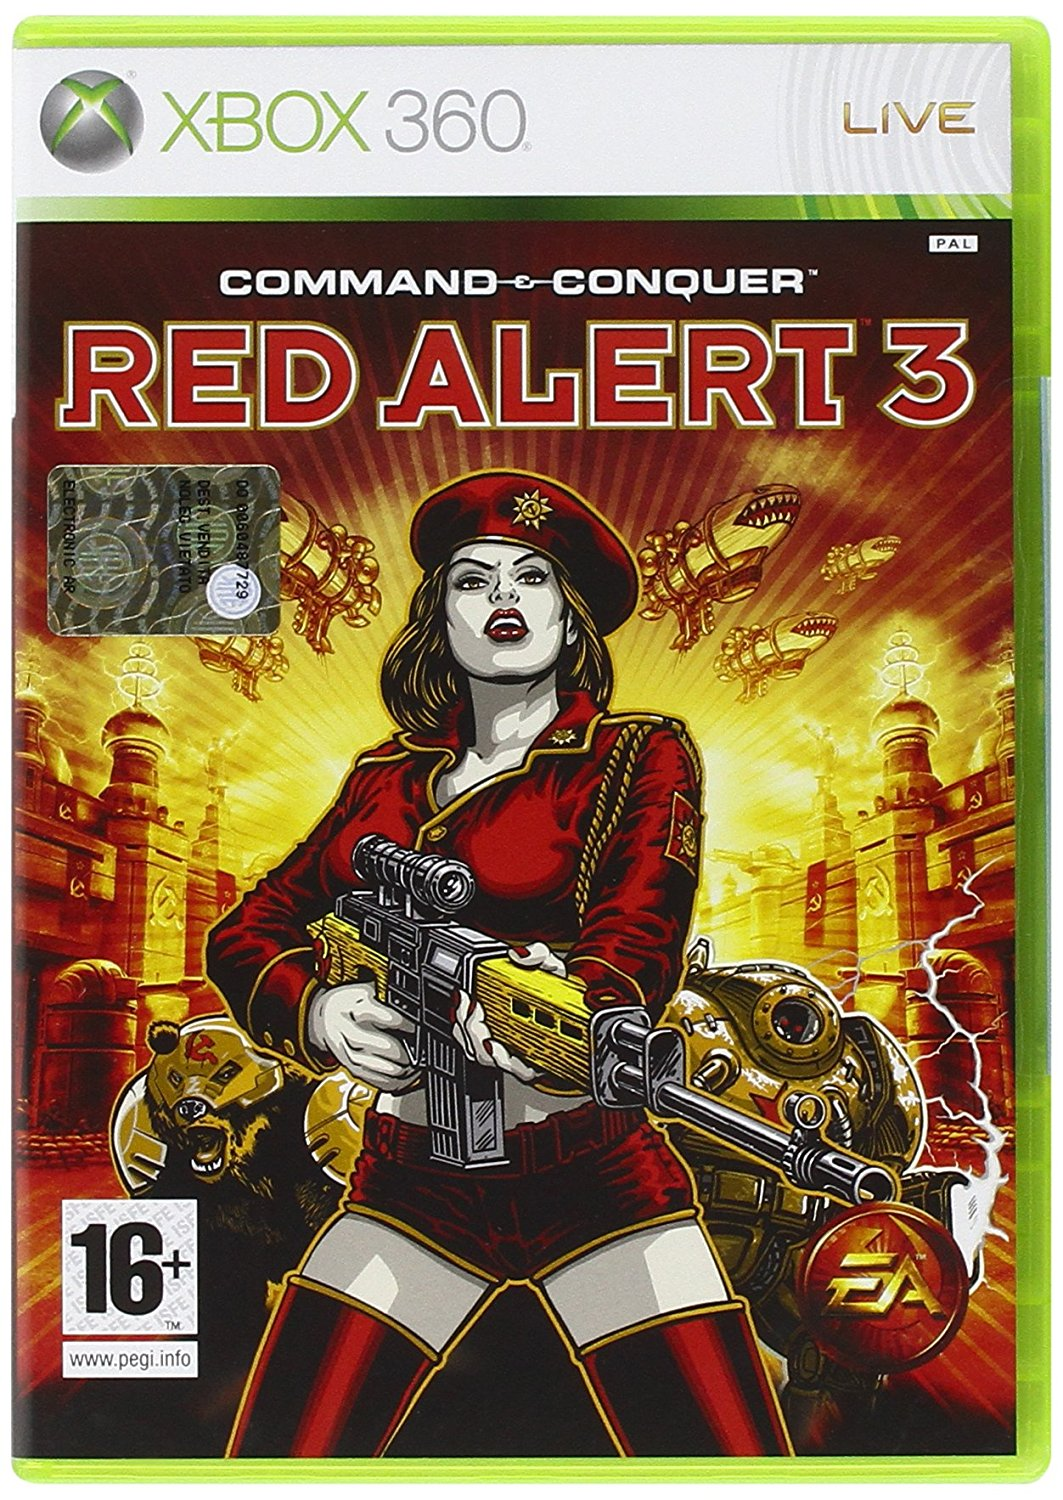 Command and Counqer - Red Alert 3